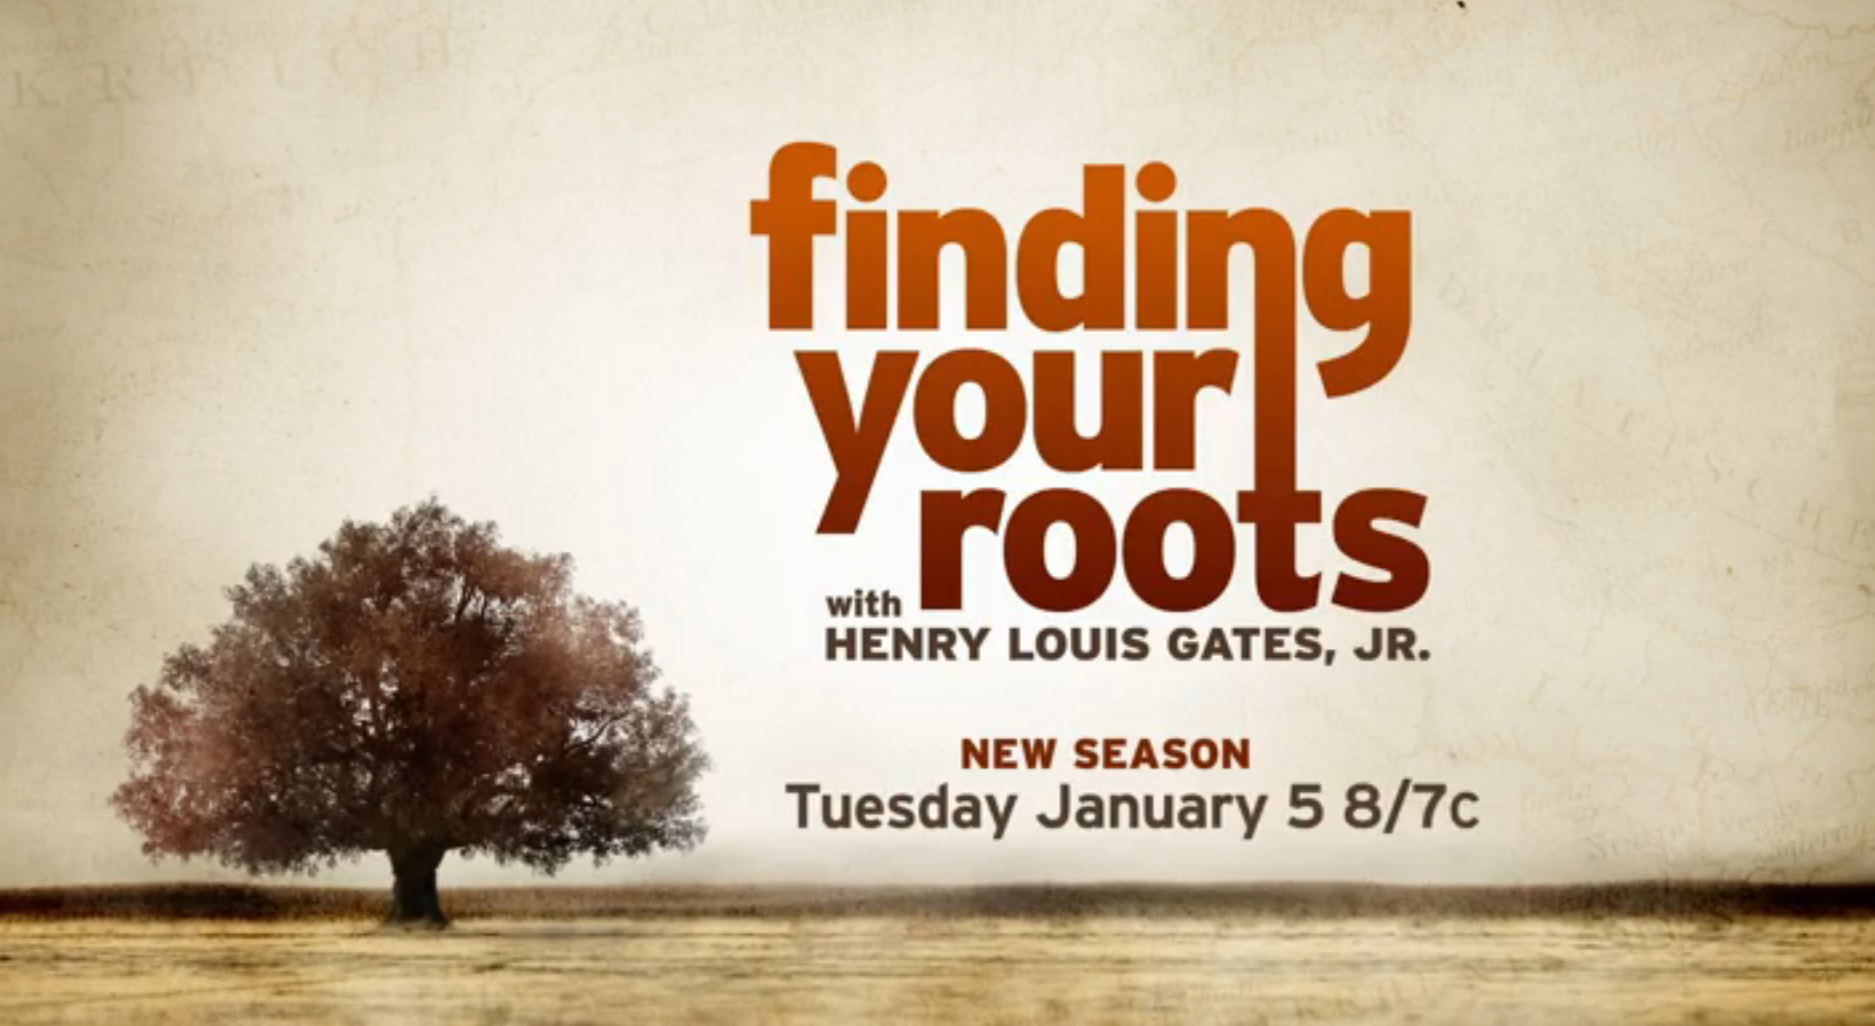 Image - Findingyourroots.jpg